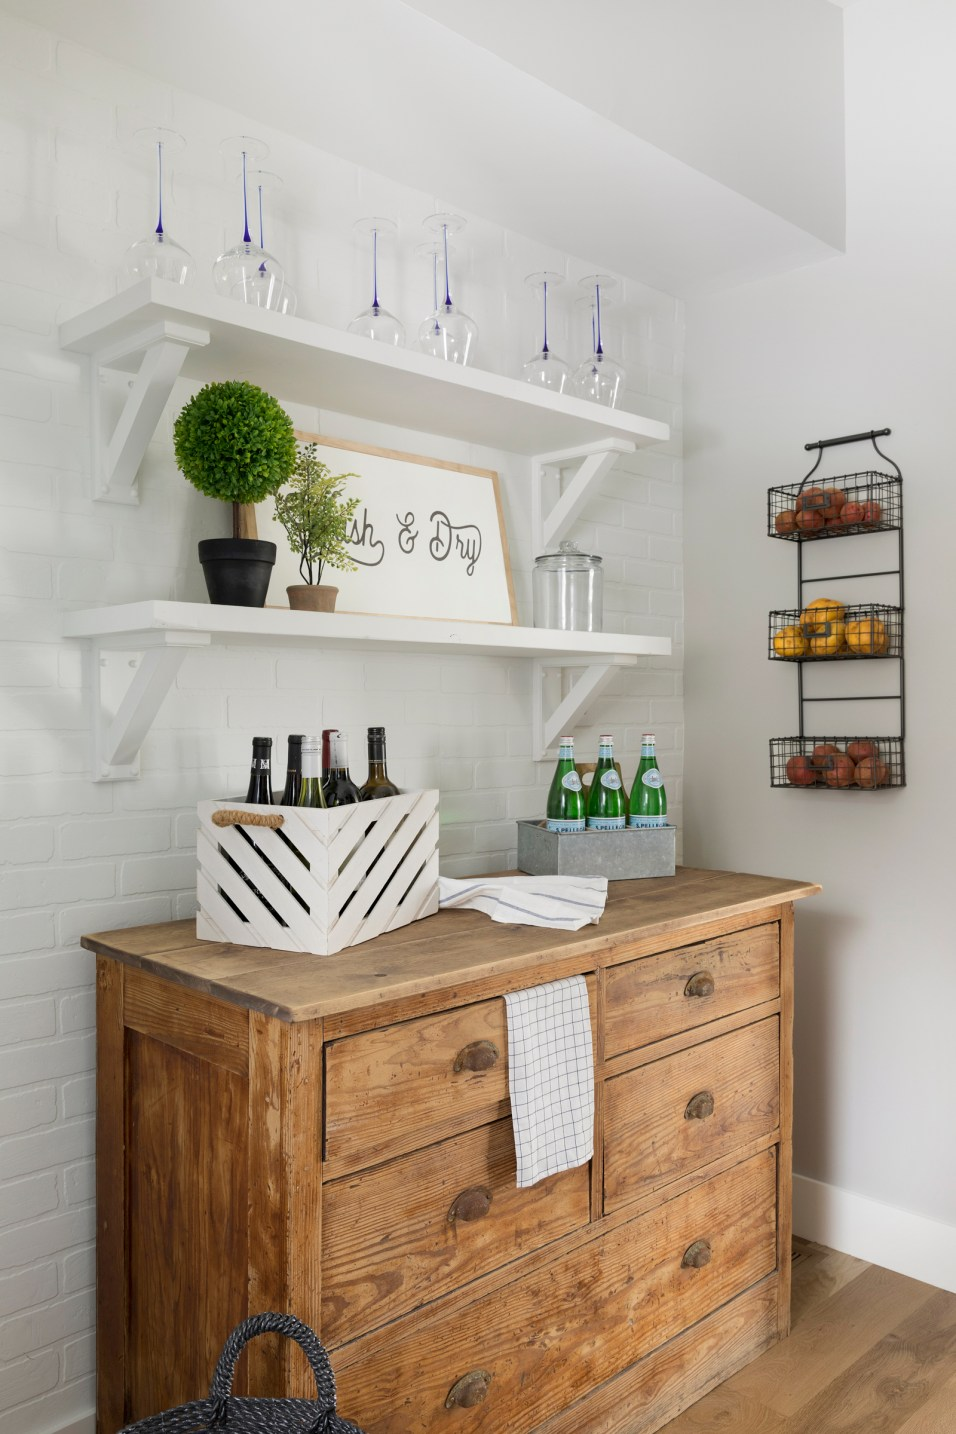 Lake Home Hamptons Style Laundry Room and Pantry